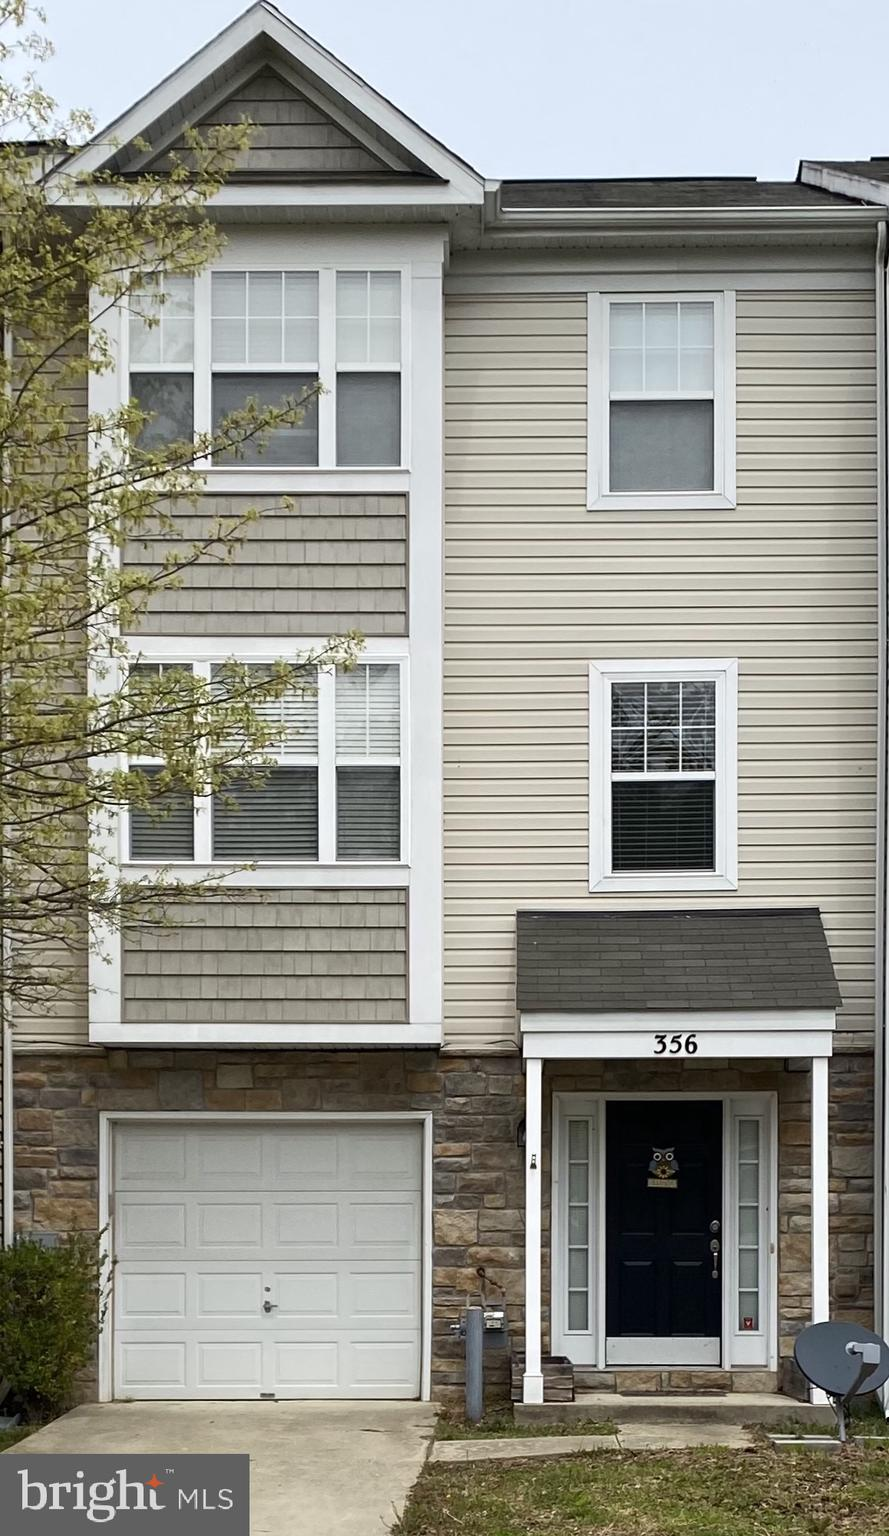 Beautiful Three-story town home in Oak Tree Landing. This beauty has three spacious levels with the